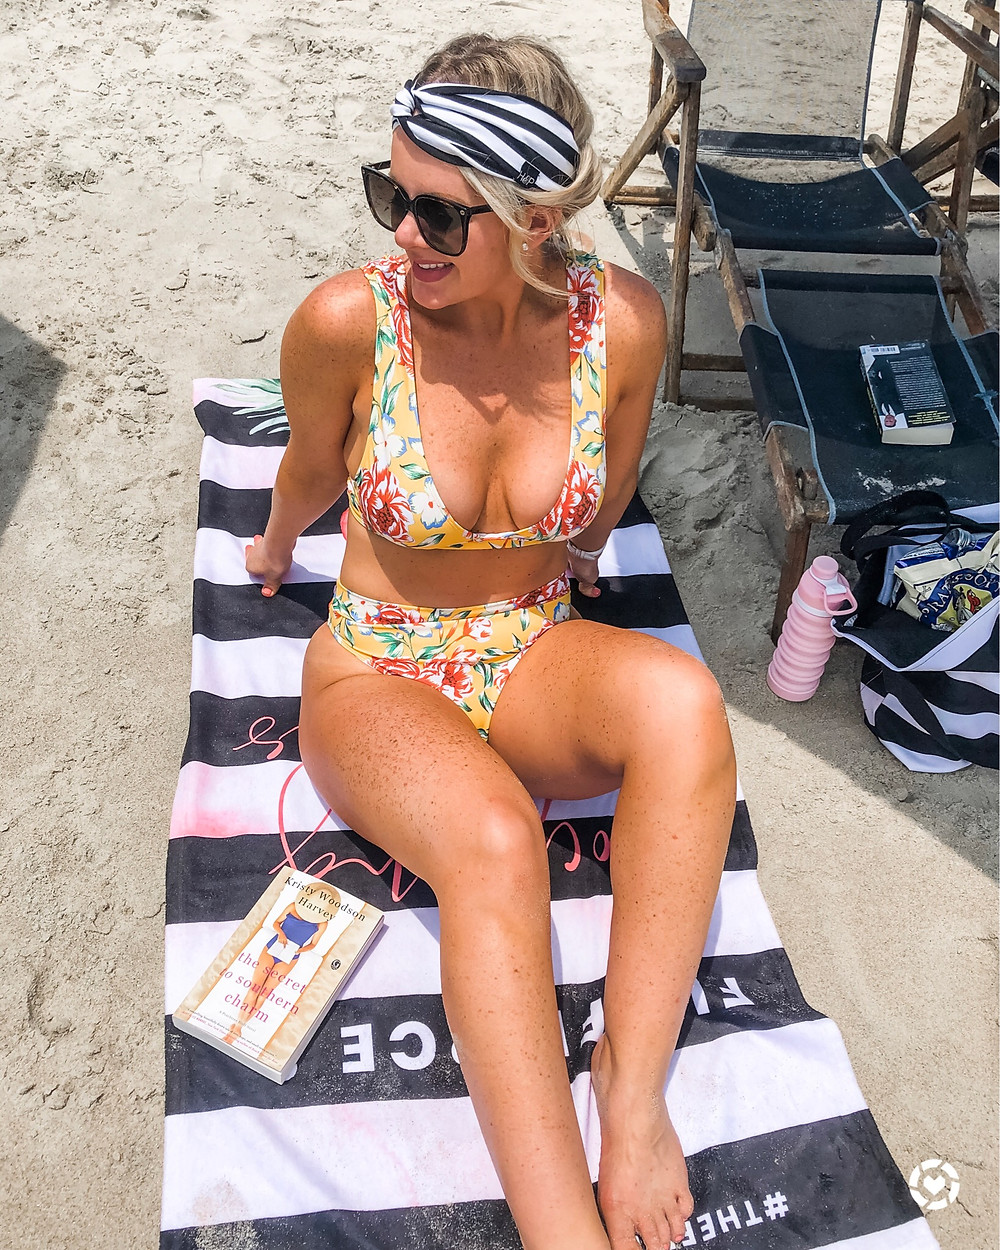 5 weeks pregnant on vacation to Tybee Island.